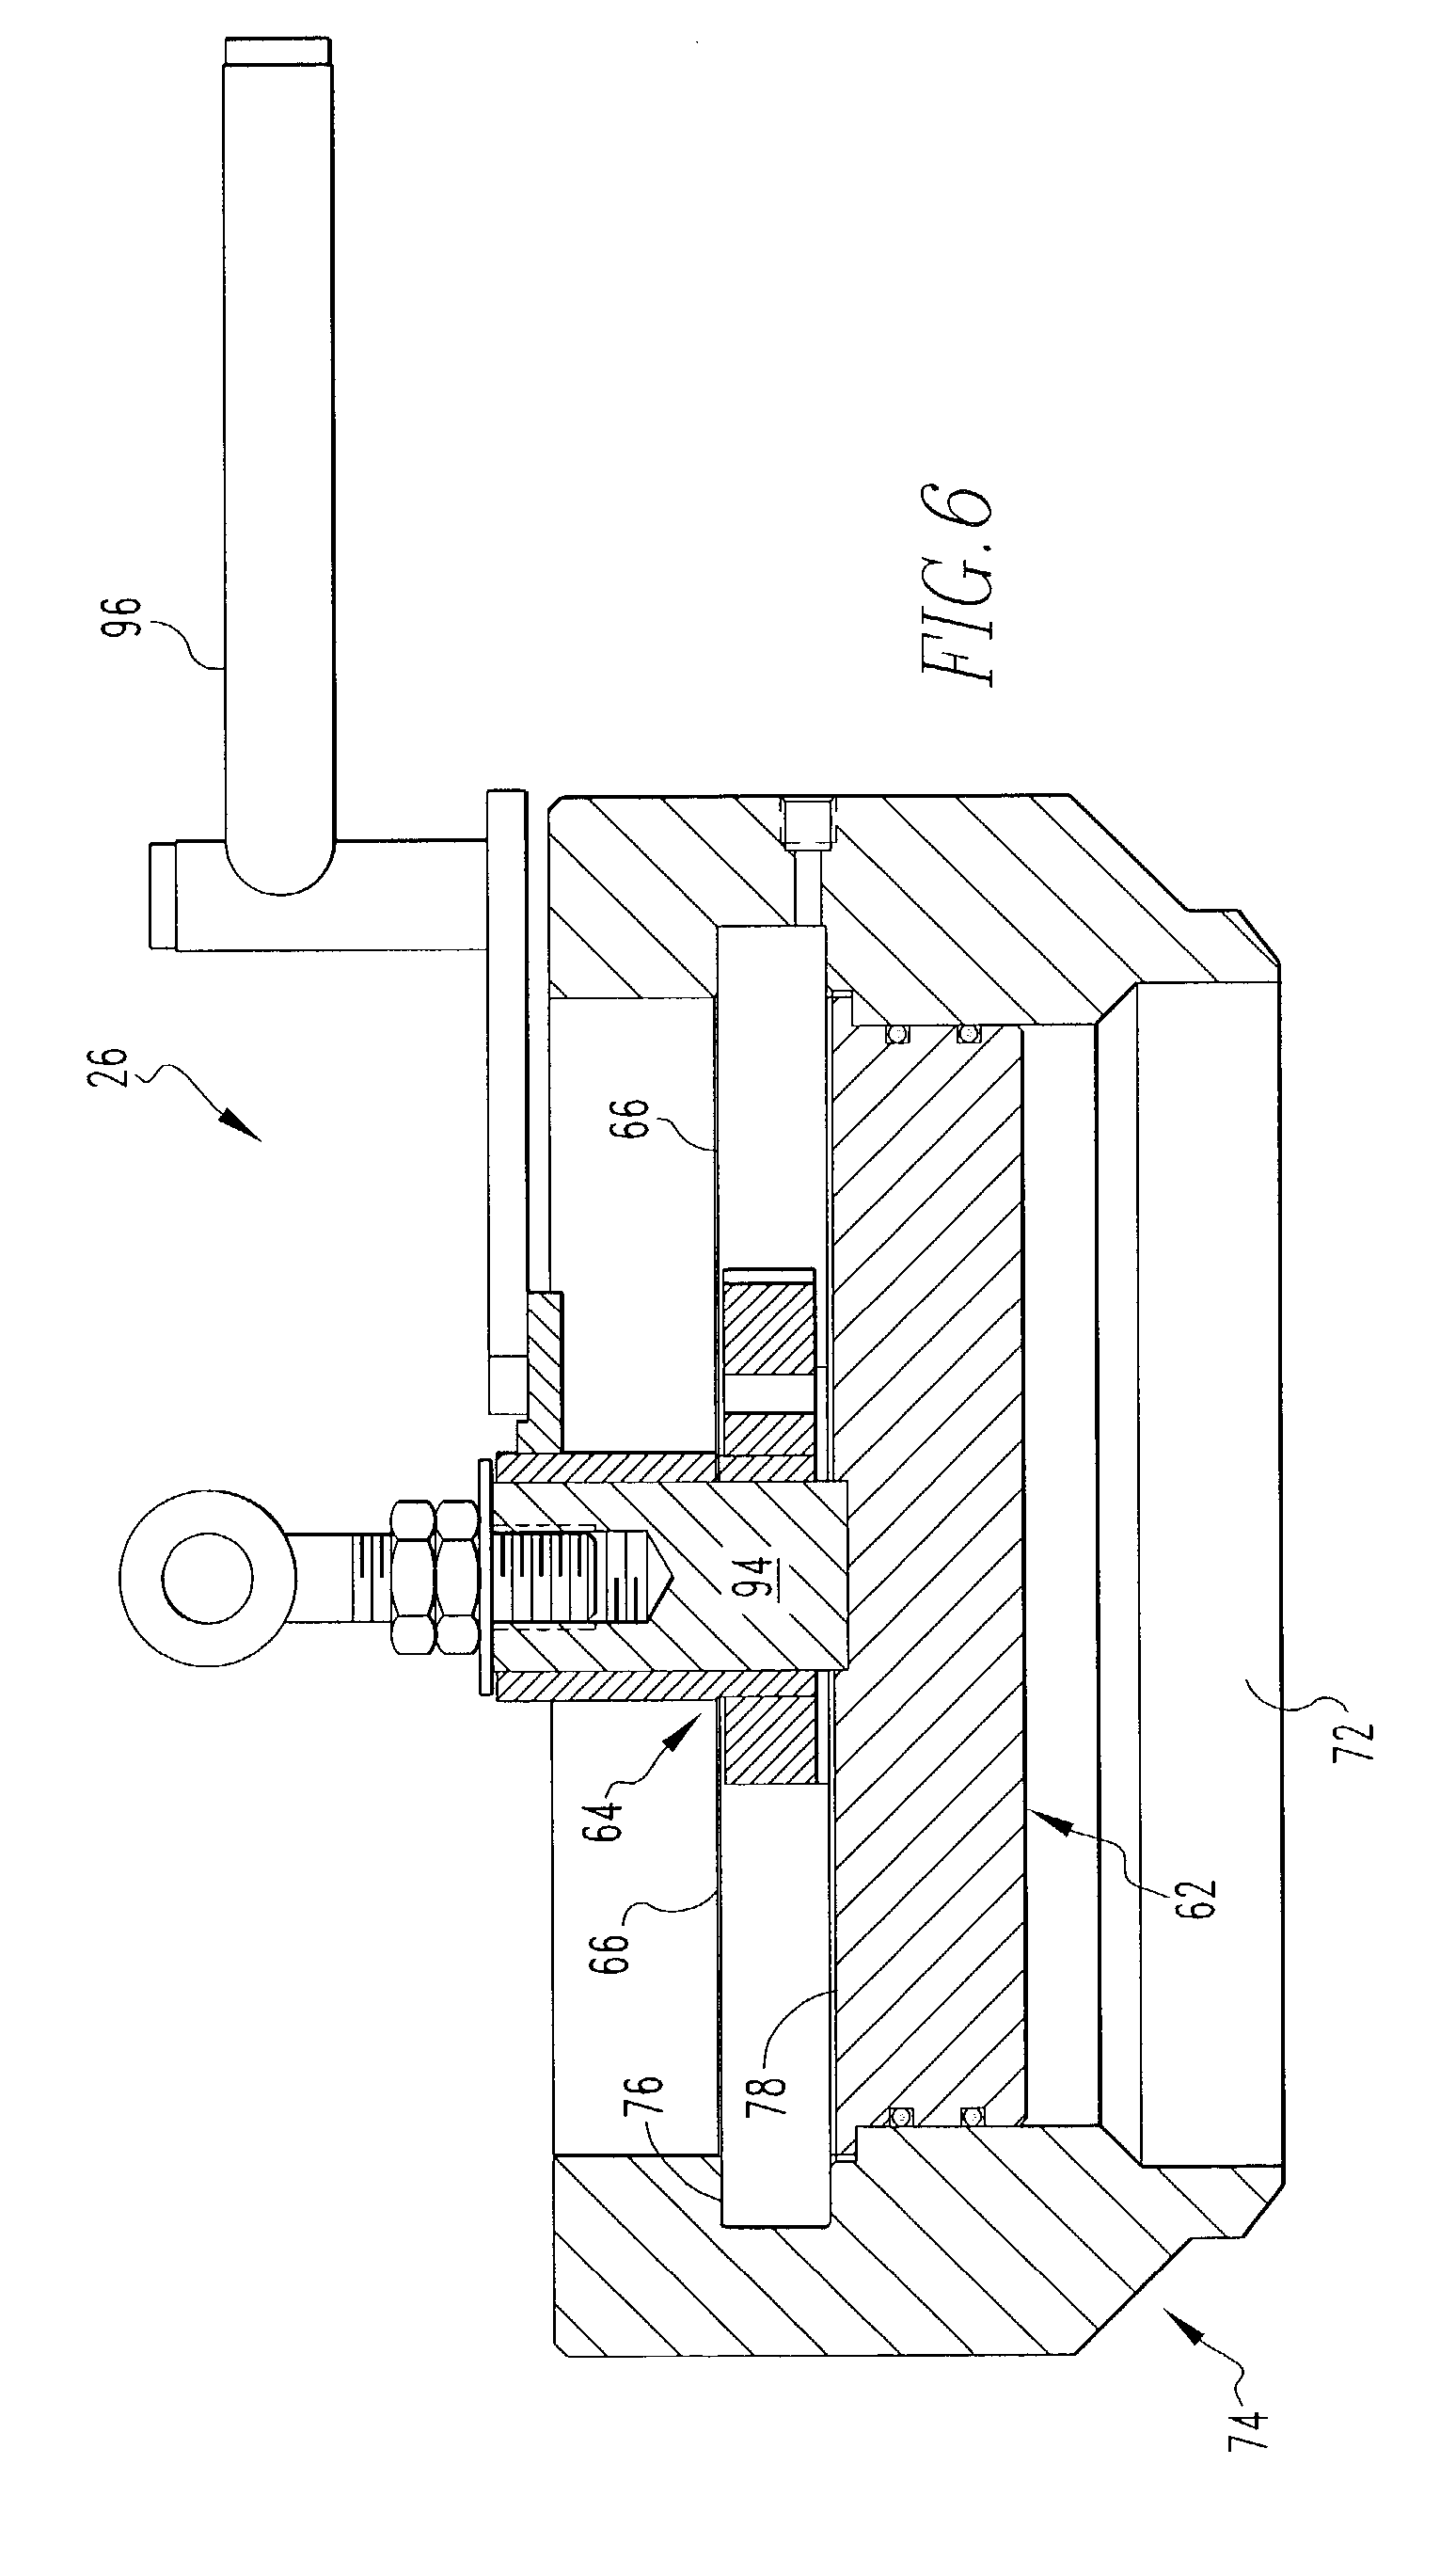 patent us7332010 - high pressure filter  separator and locking mechanism